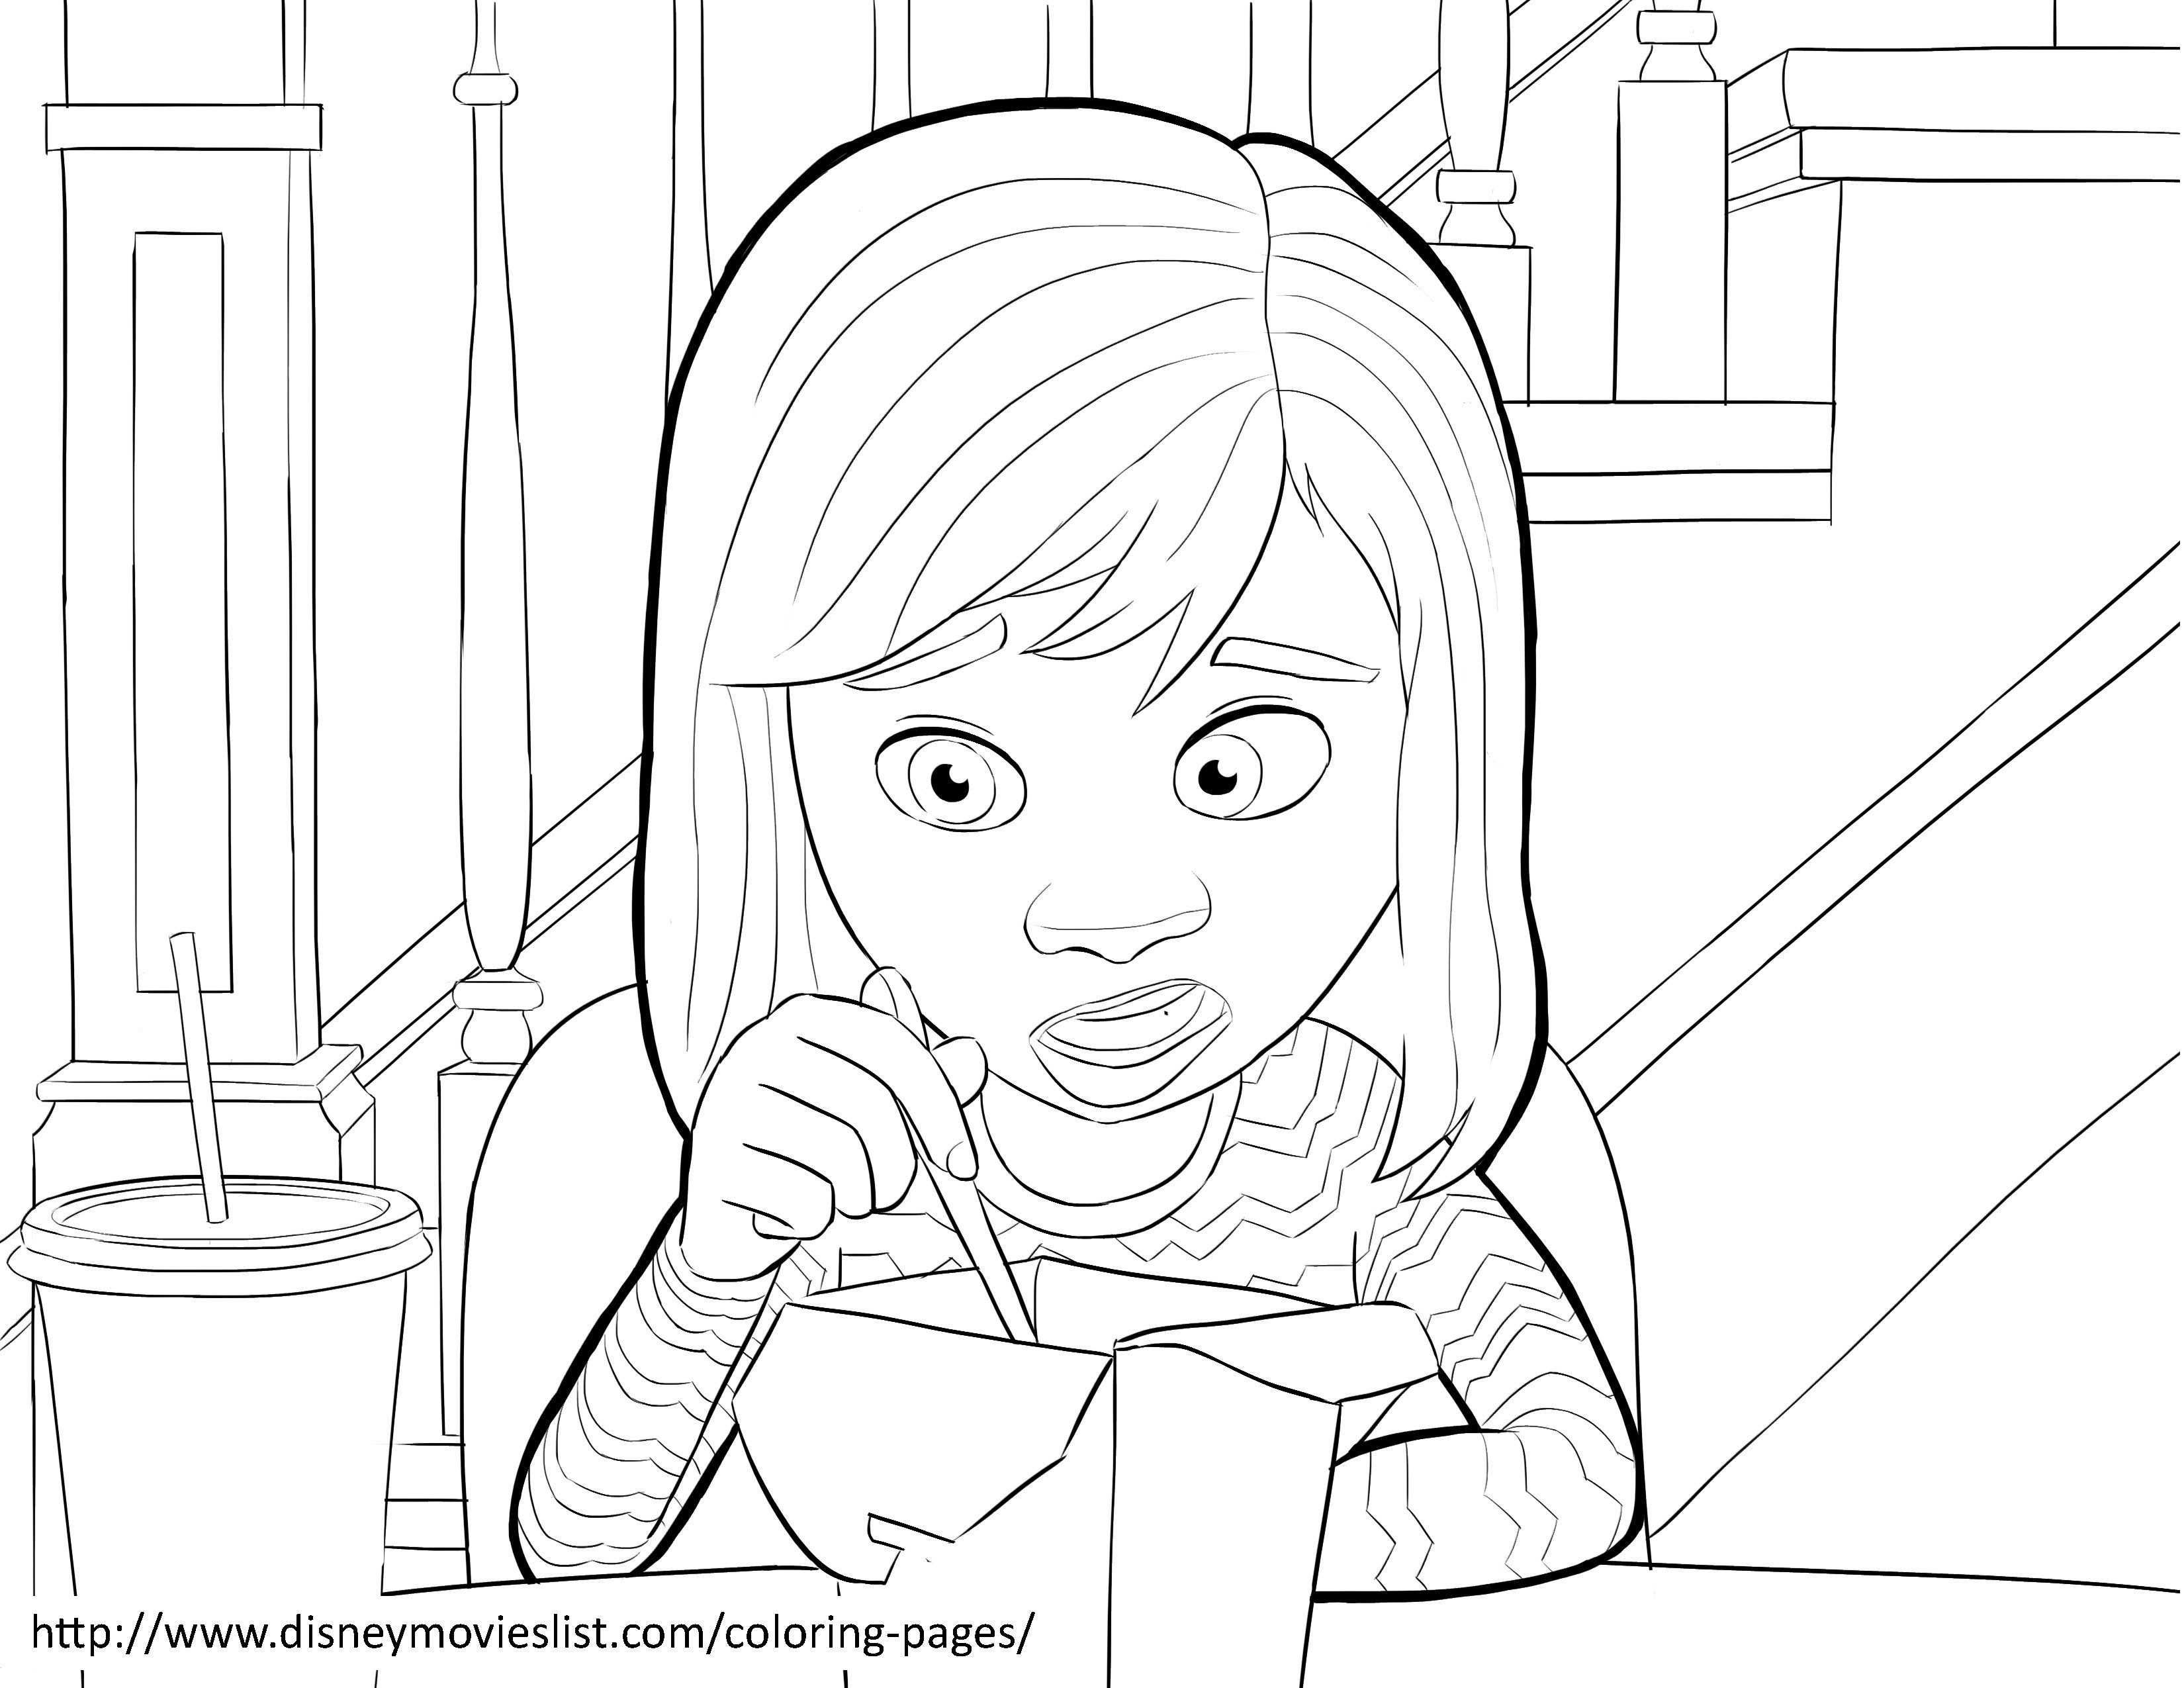 3300x2550 Coloring Pages Inside Out Best Of Inside Out Coloring Pages Best